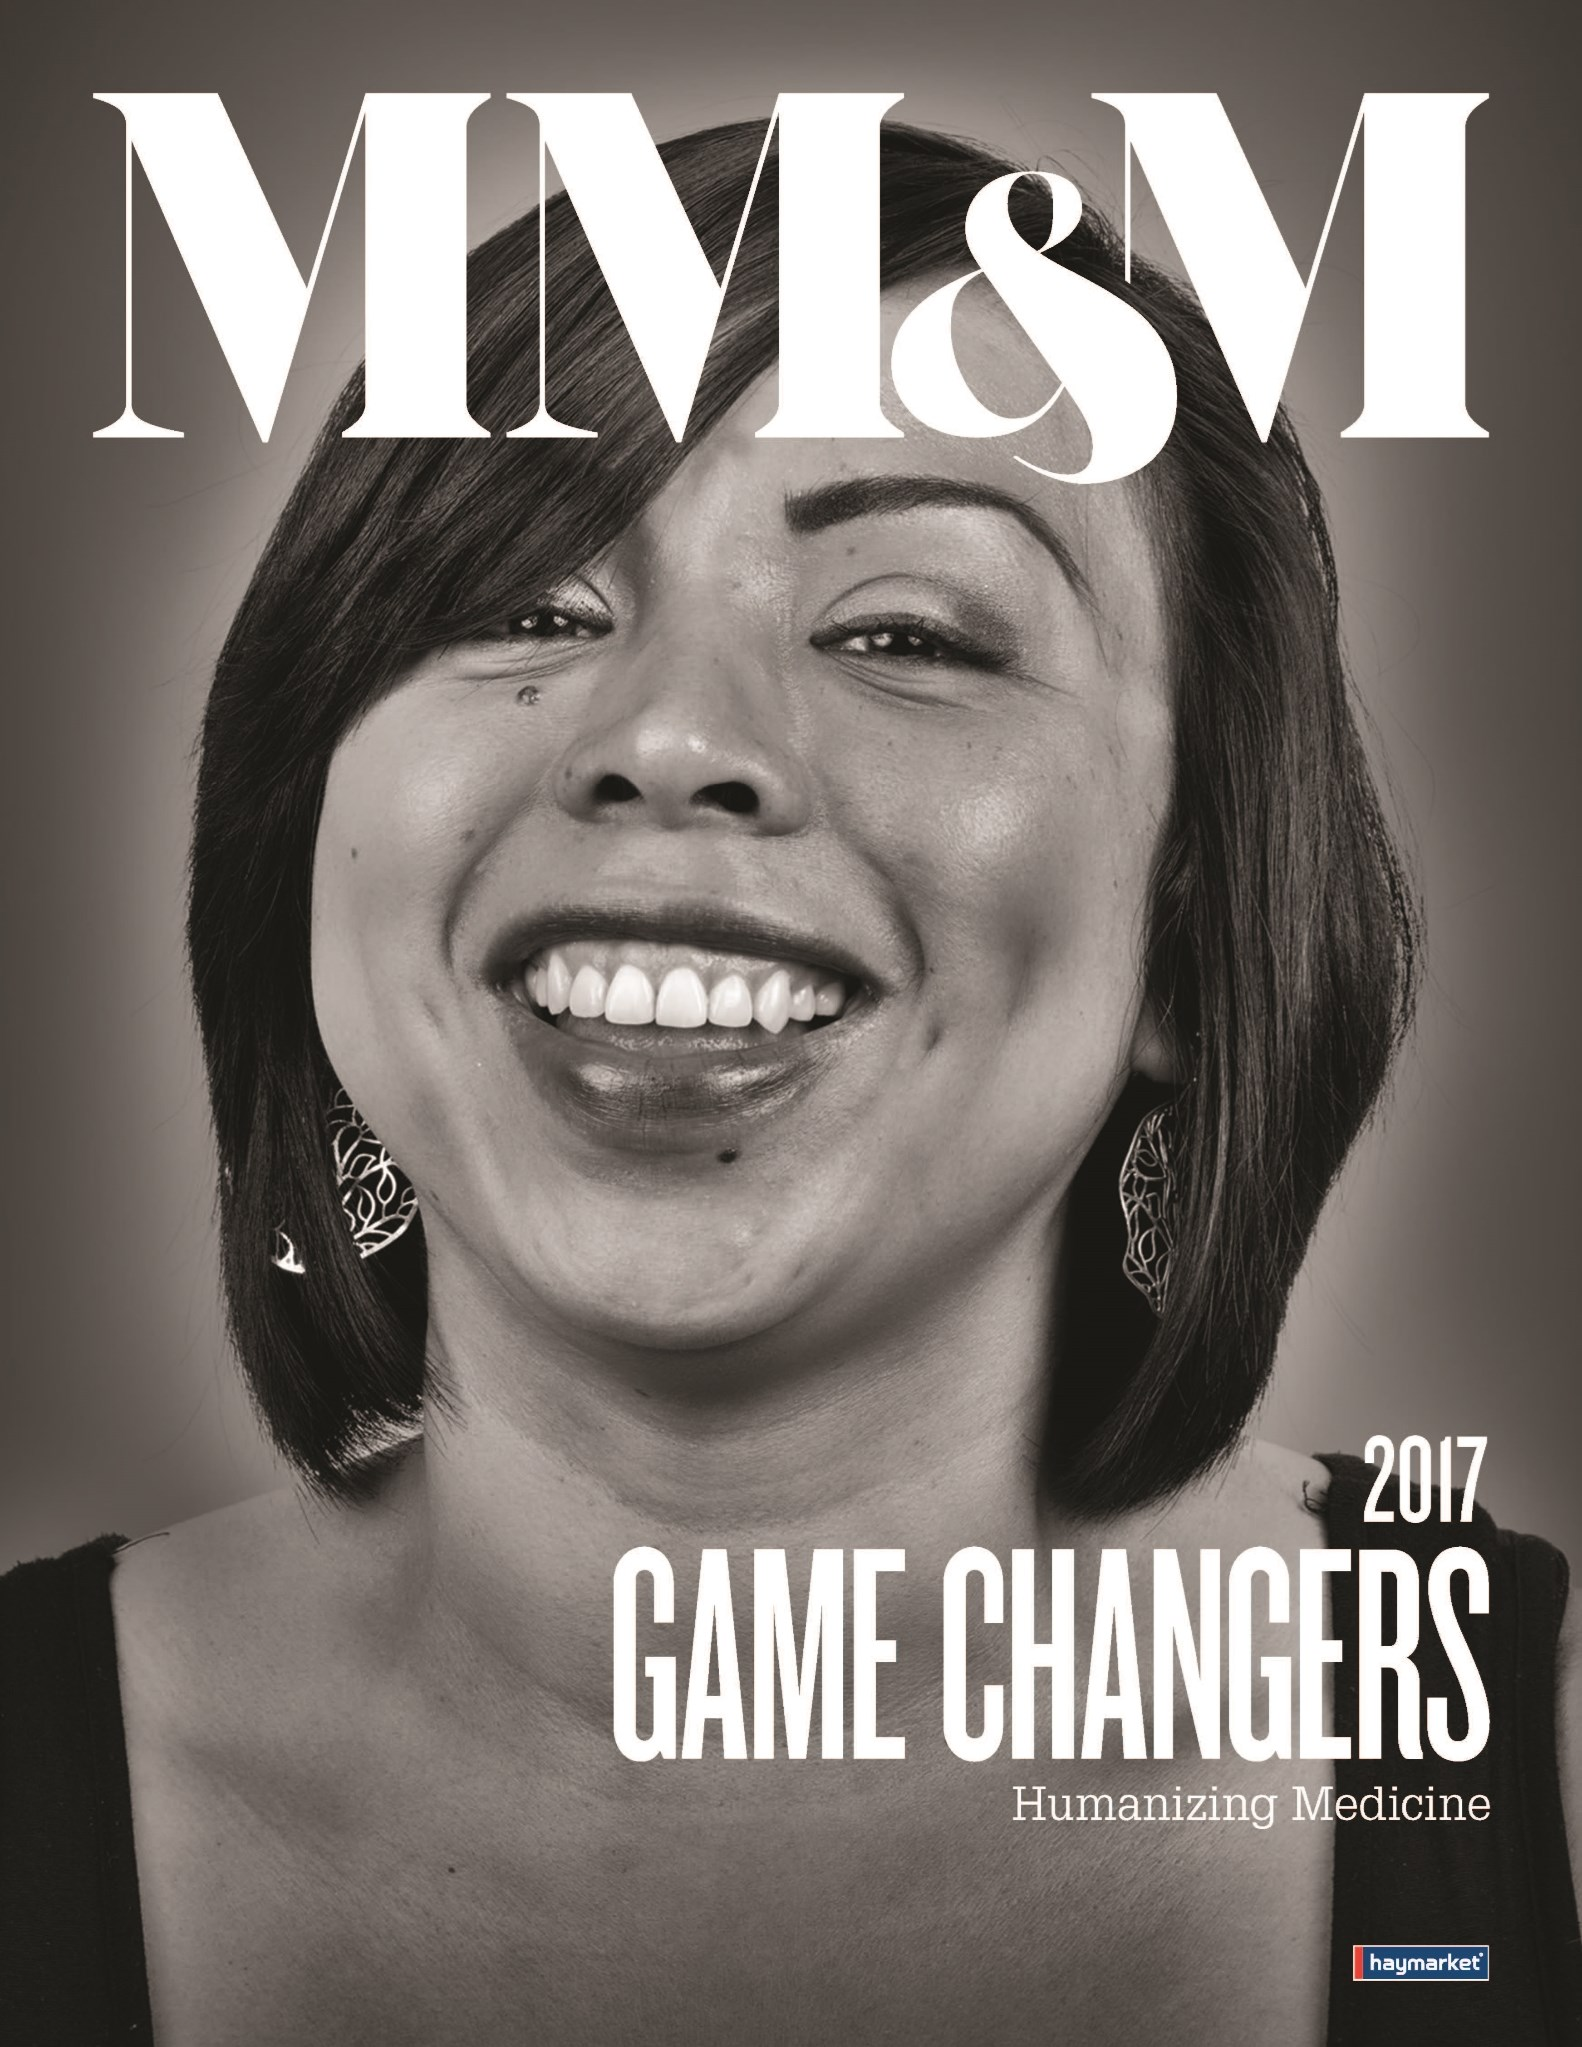 Read the complete 2017 Game Changers digital edition